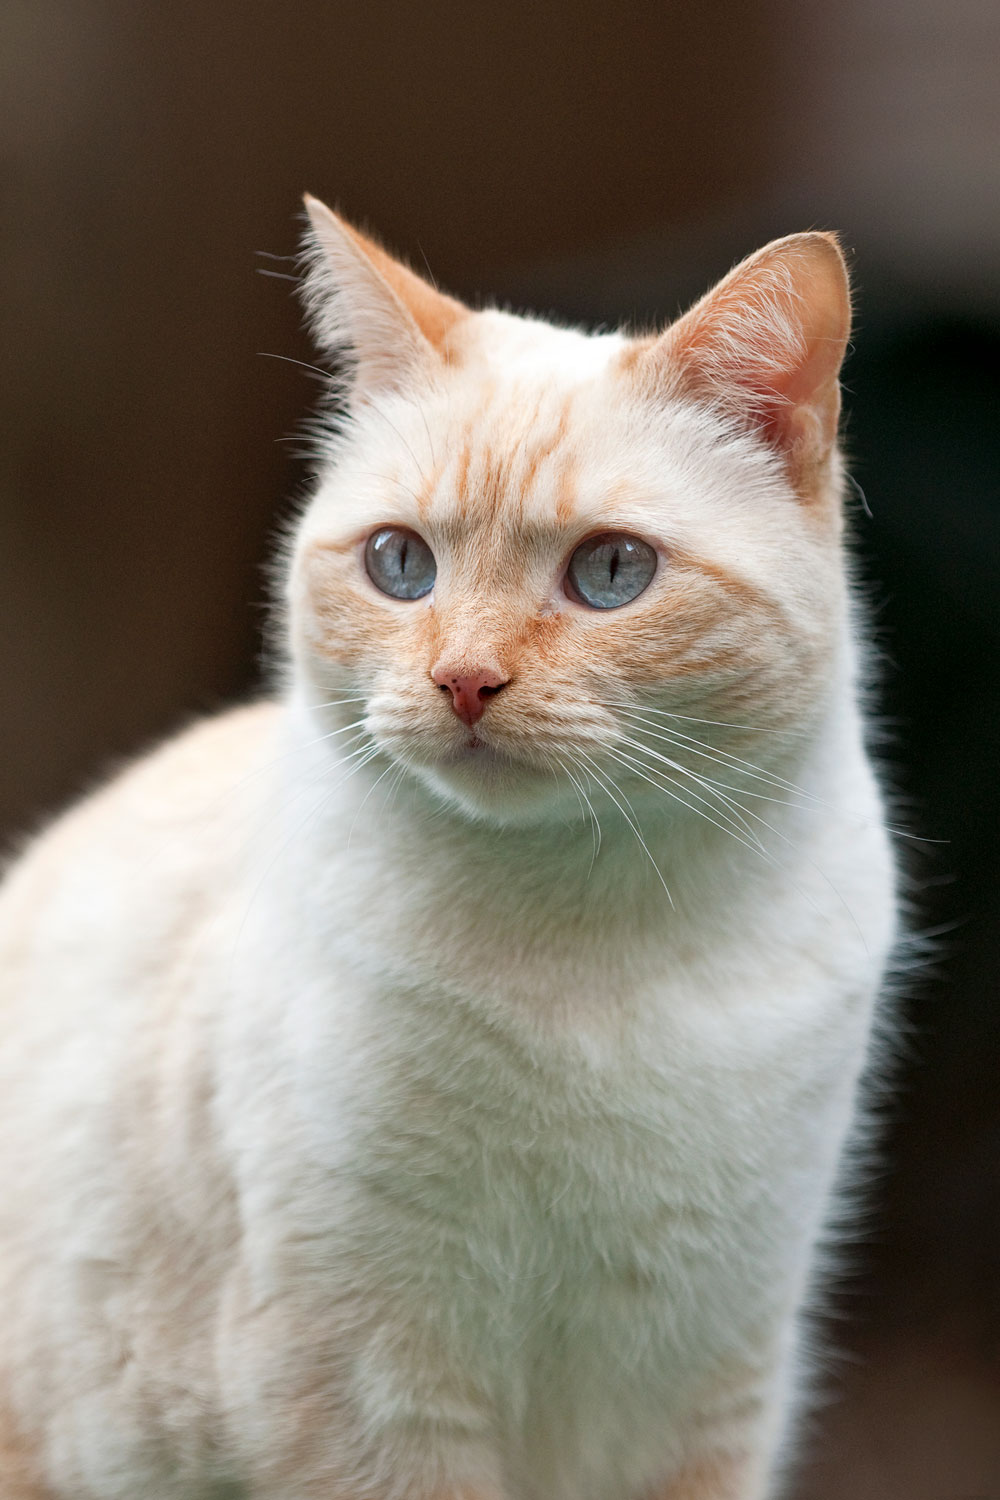 A flame point shorthaired cat